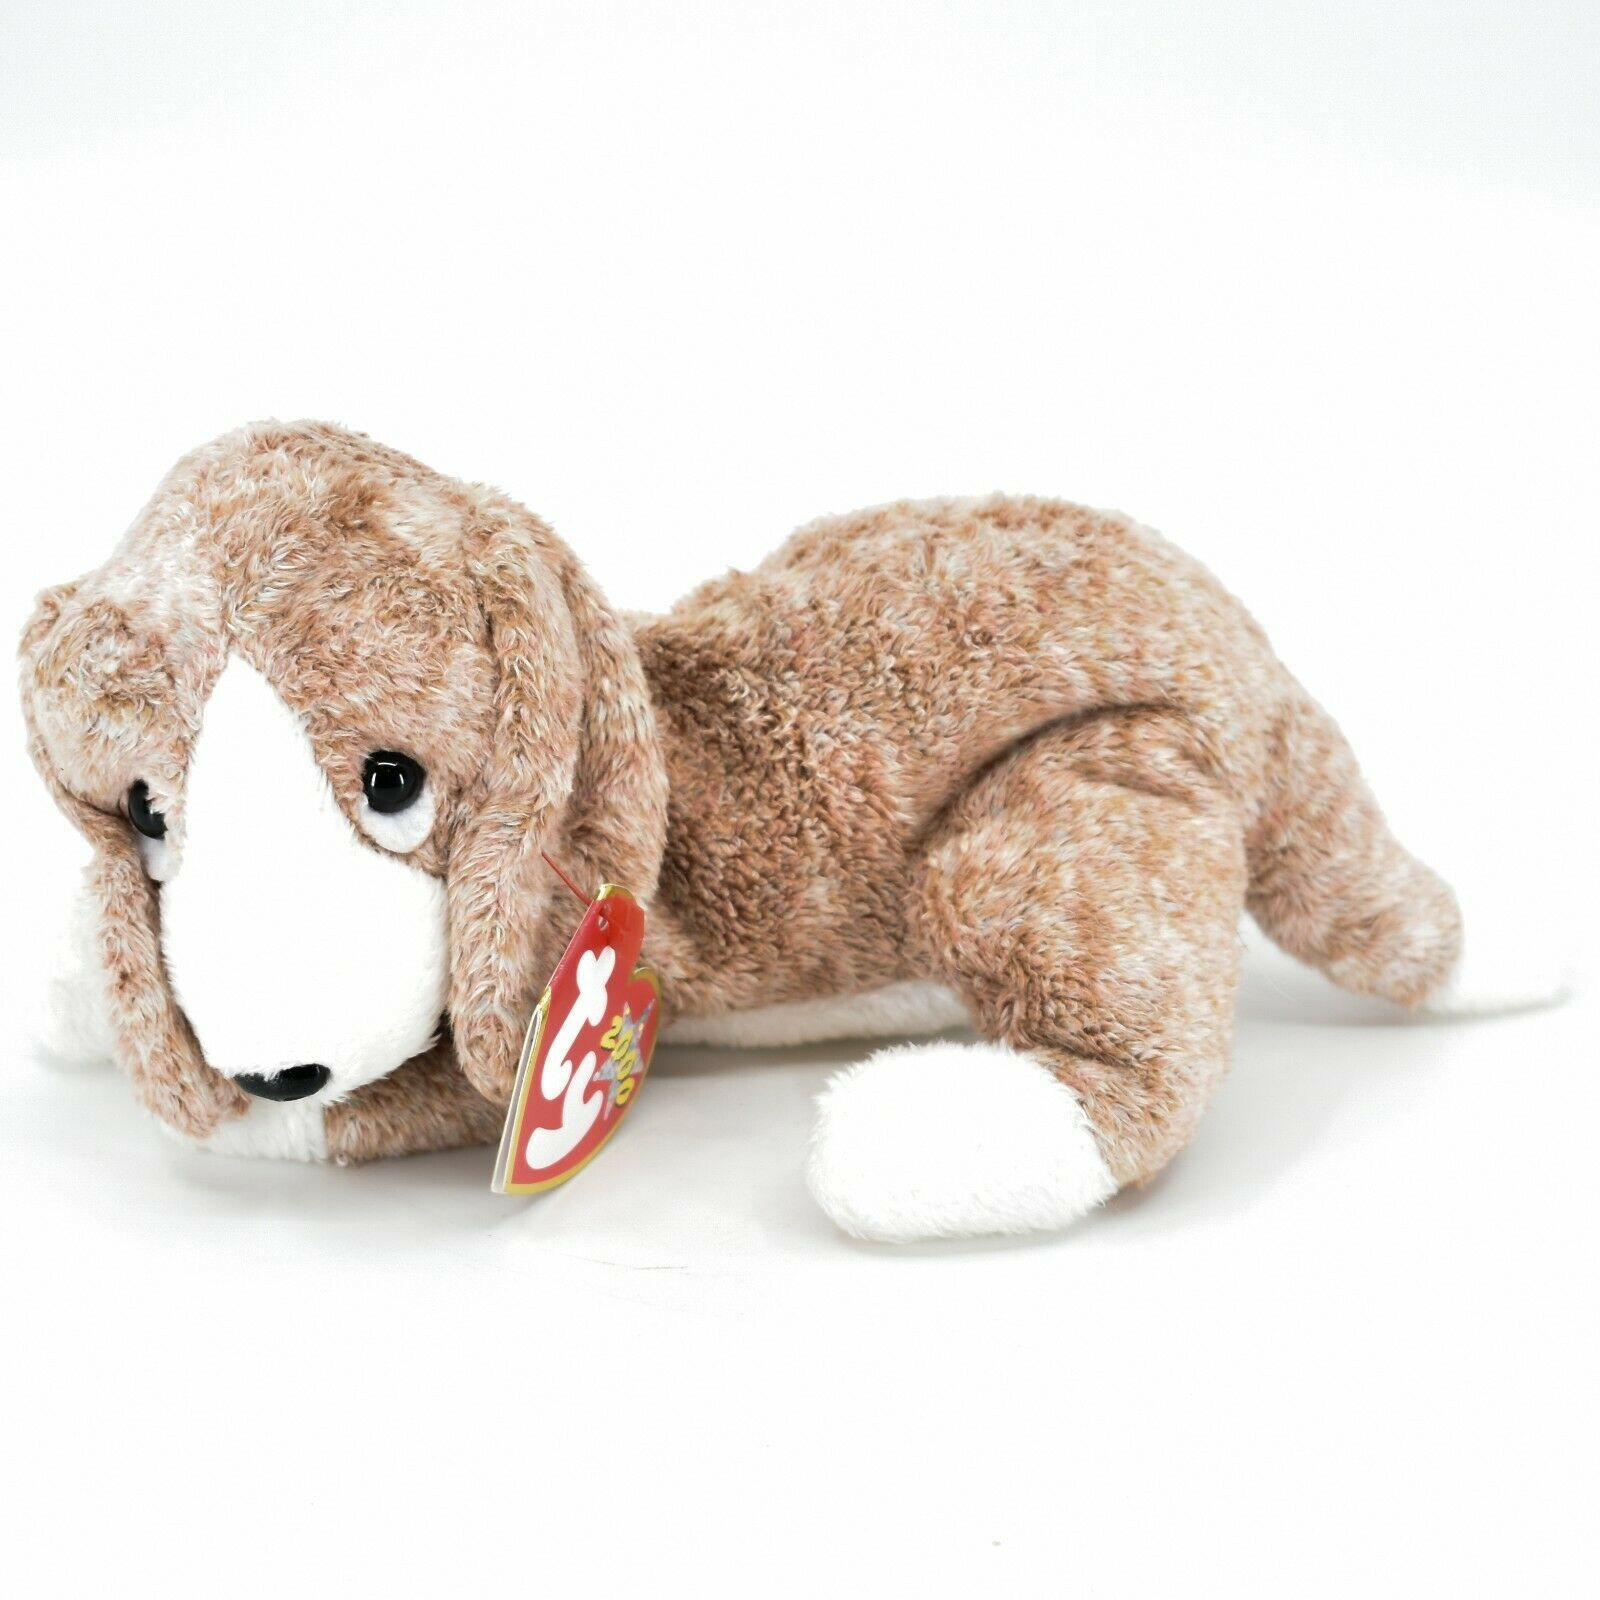 2000 Ty Beanie Baby Sniffer the Bloodhound Puppy Dog Beanbag Plush Doll Toy